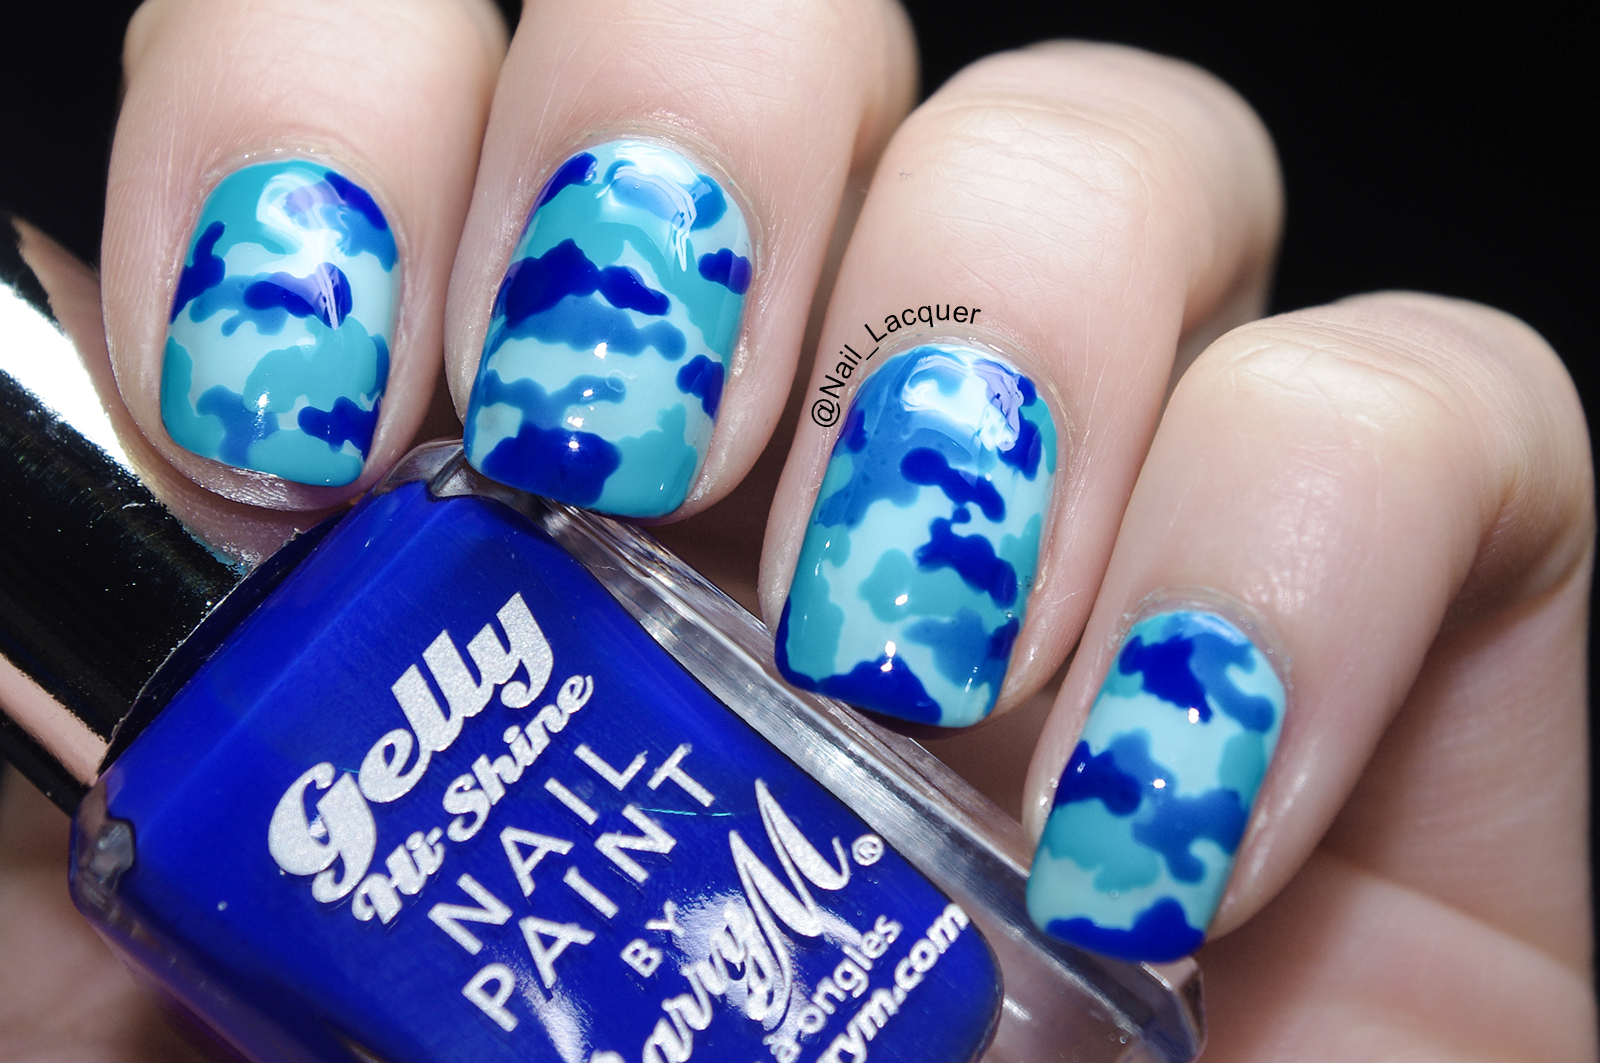 hope that the camouflage nail art tutorial has been helpful for youCamo Nail Art Tutorial